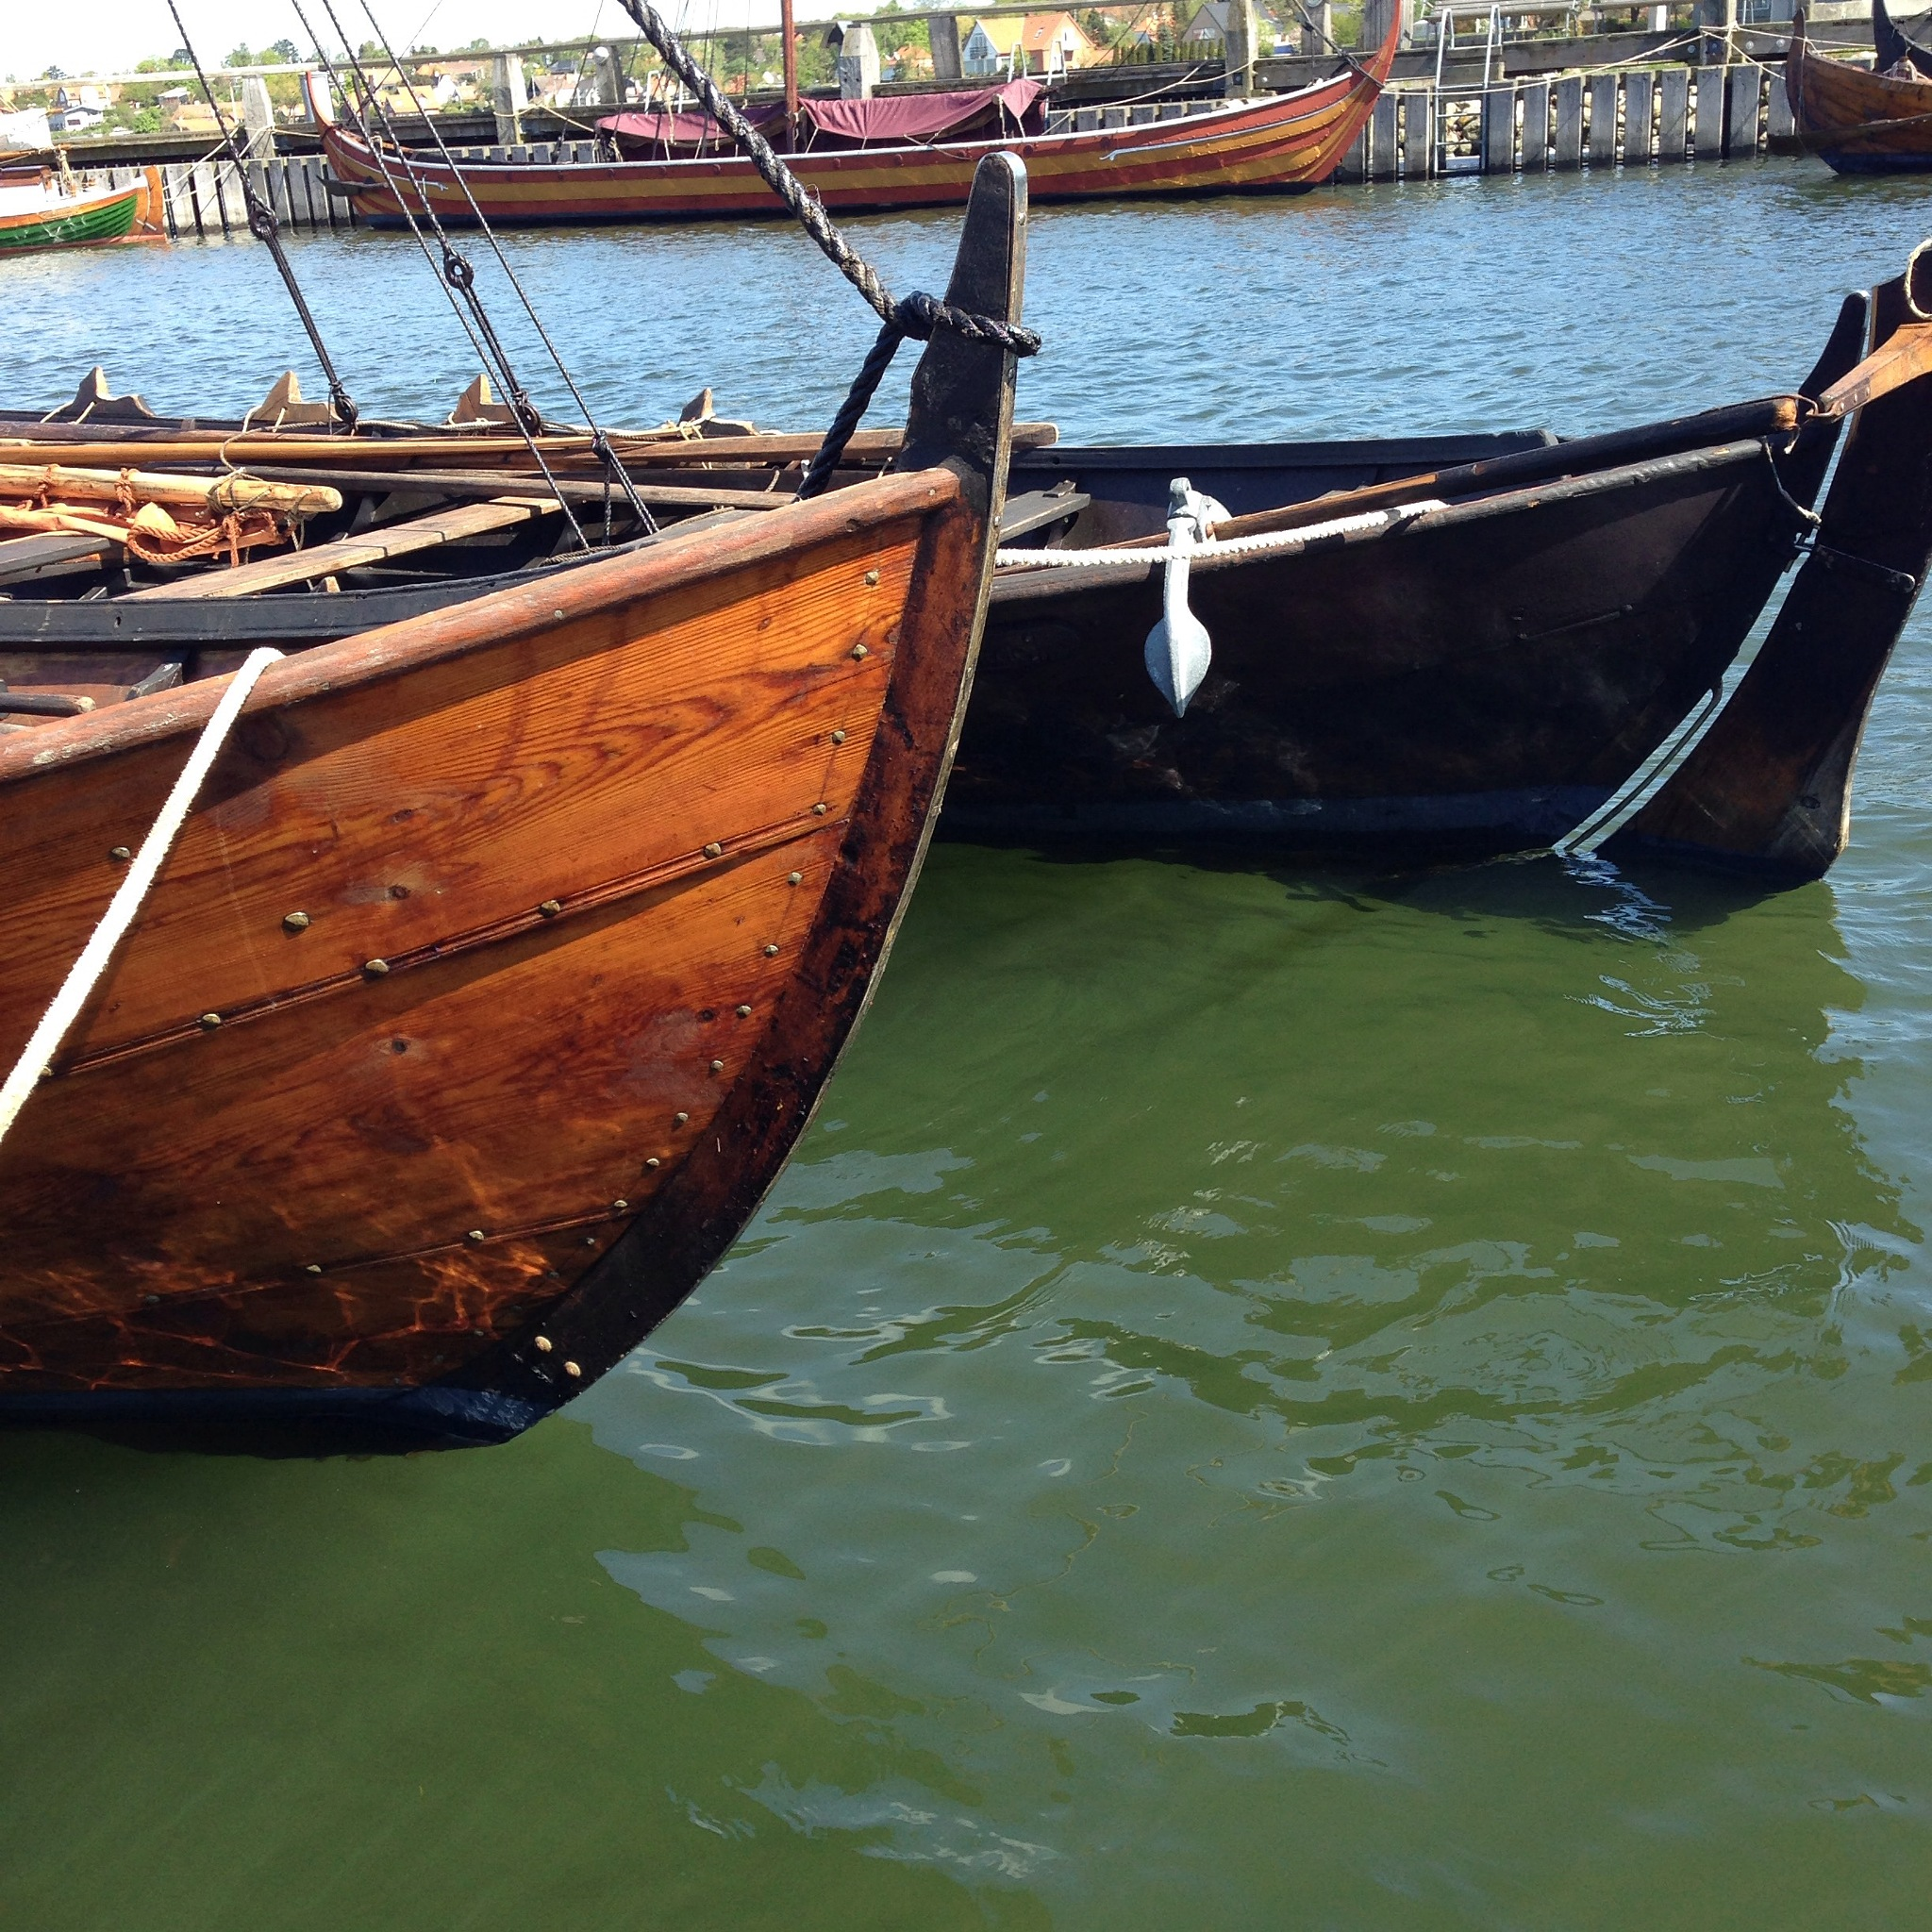 The Longboats by roy schack